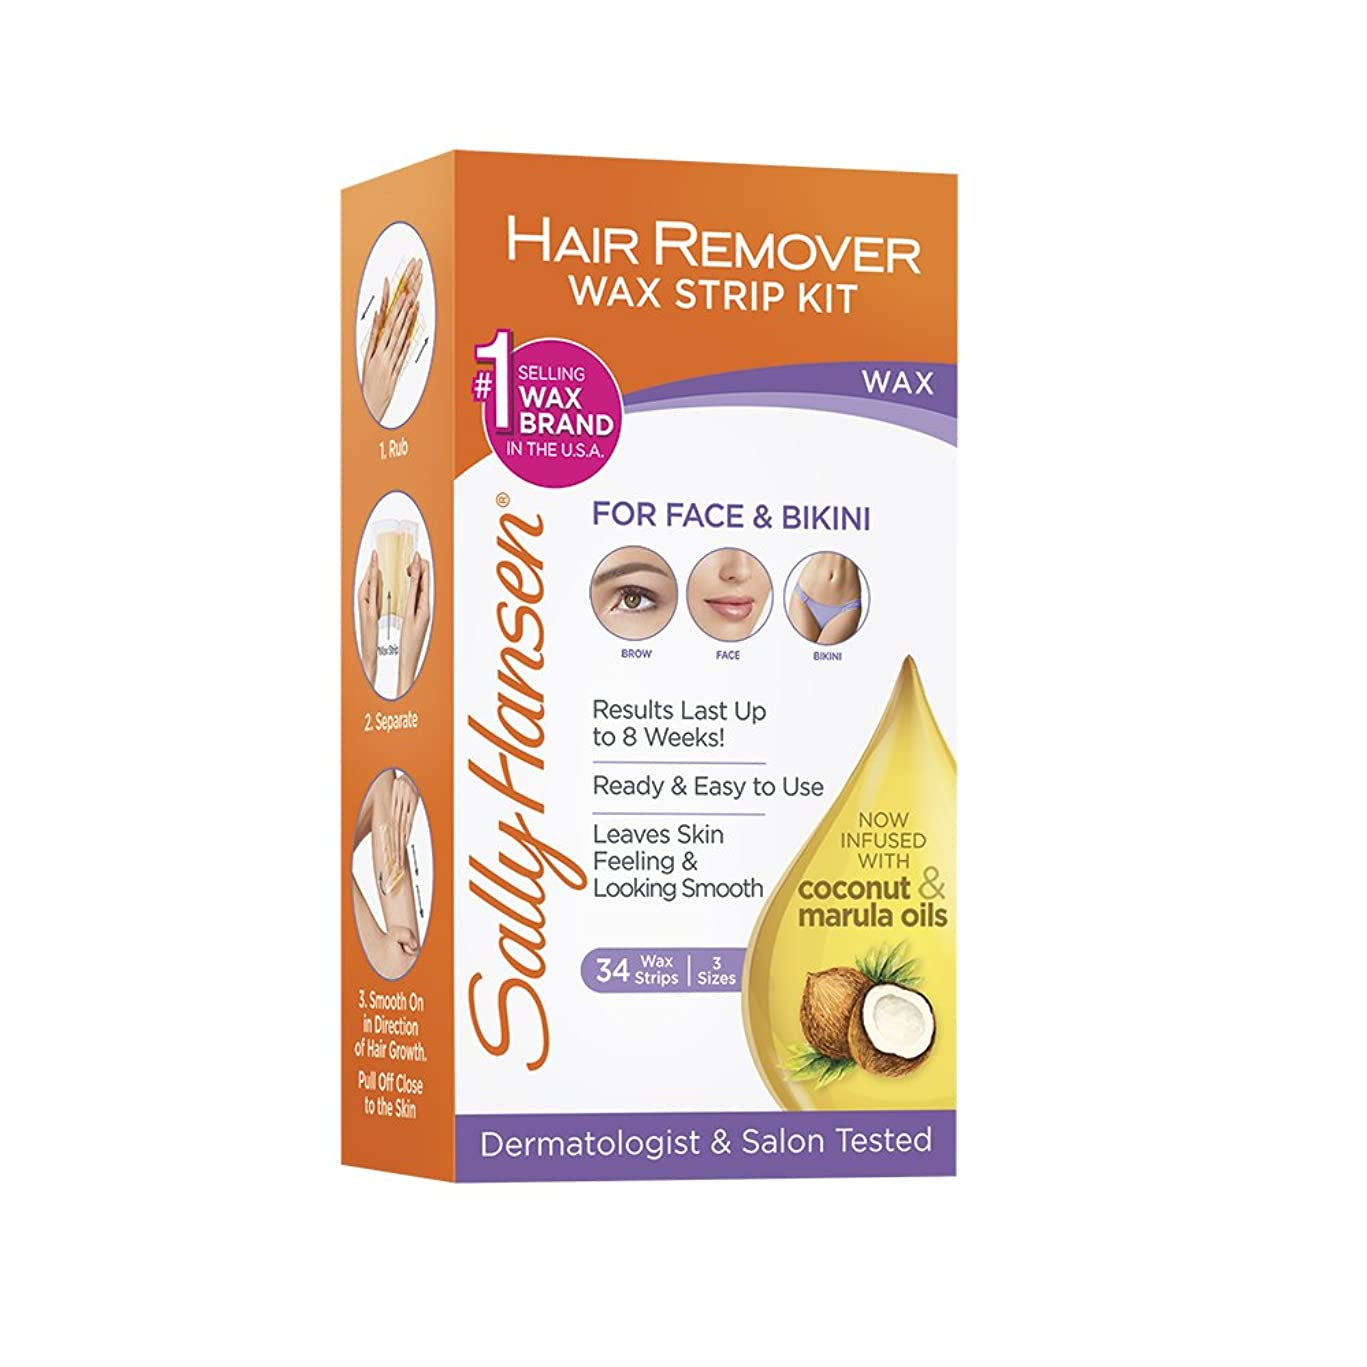 Sally Hansen Hair Remover Wax Kit for Face, Brows and Bikini, 34 Count (17 Double Sided Strips), Pack Of 1